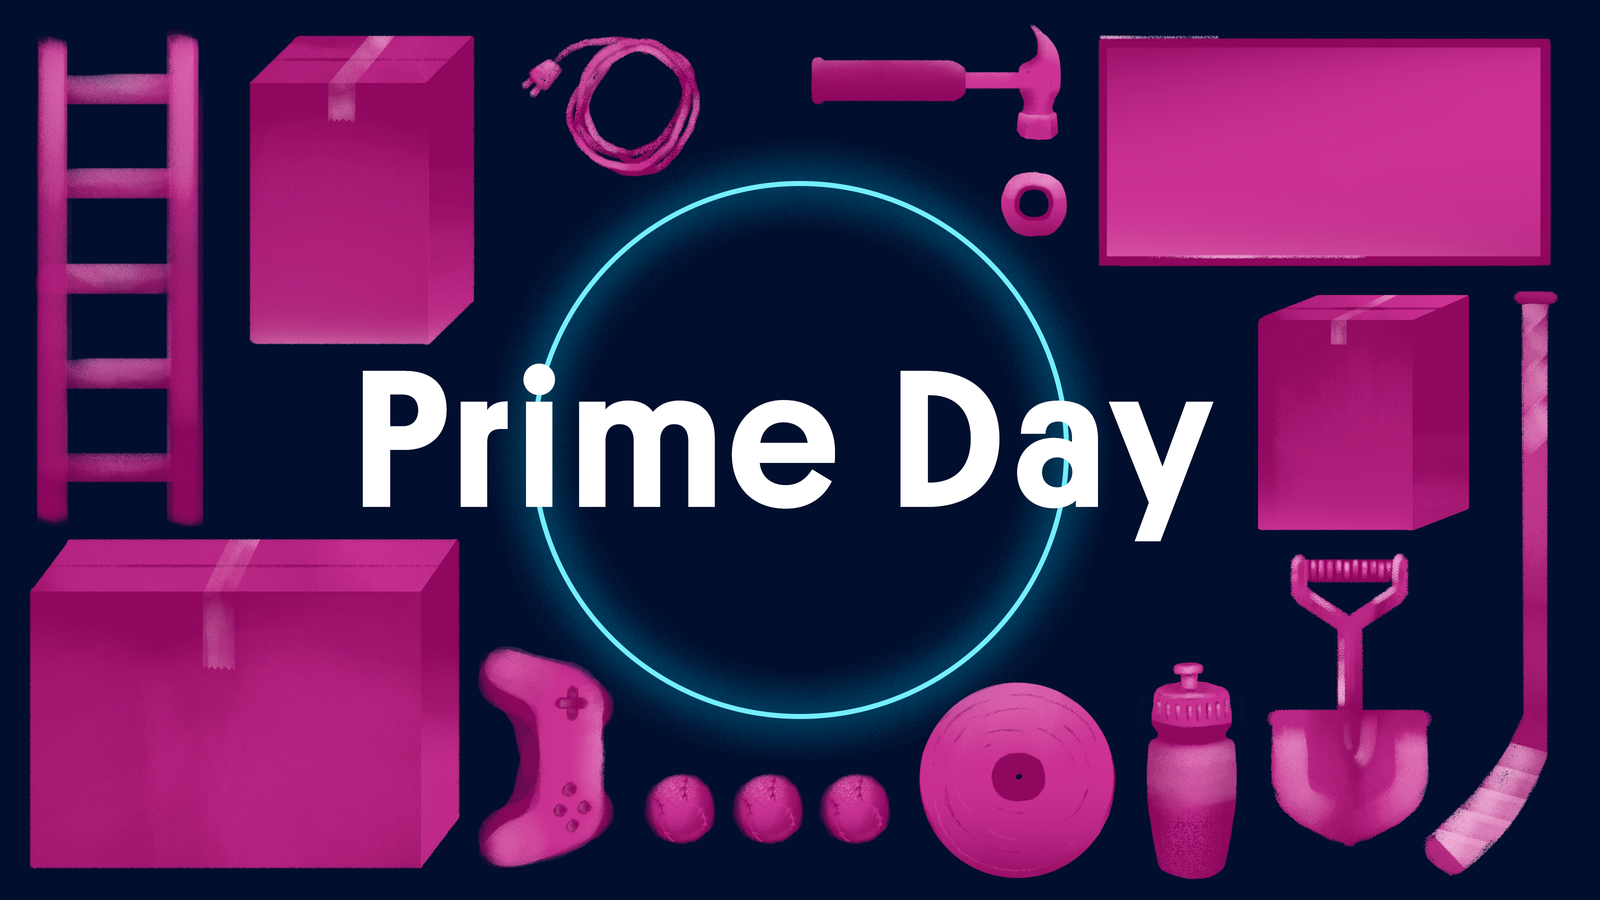 Prime Day 2019 - The Kinja Deals Hub